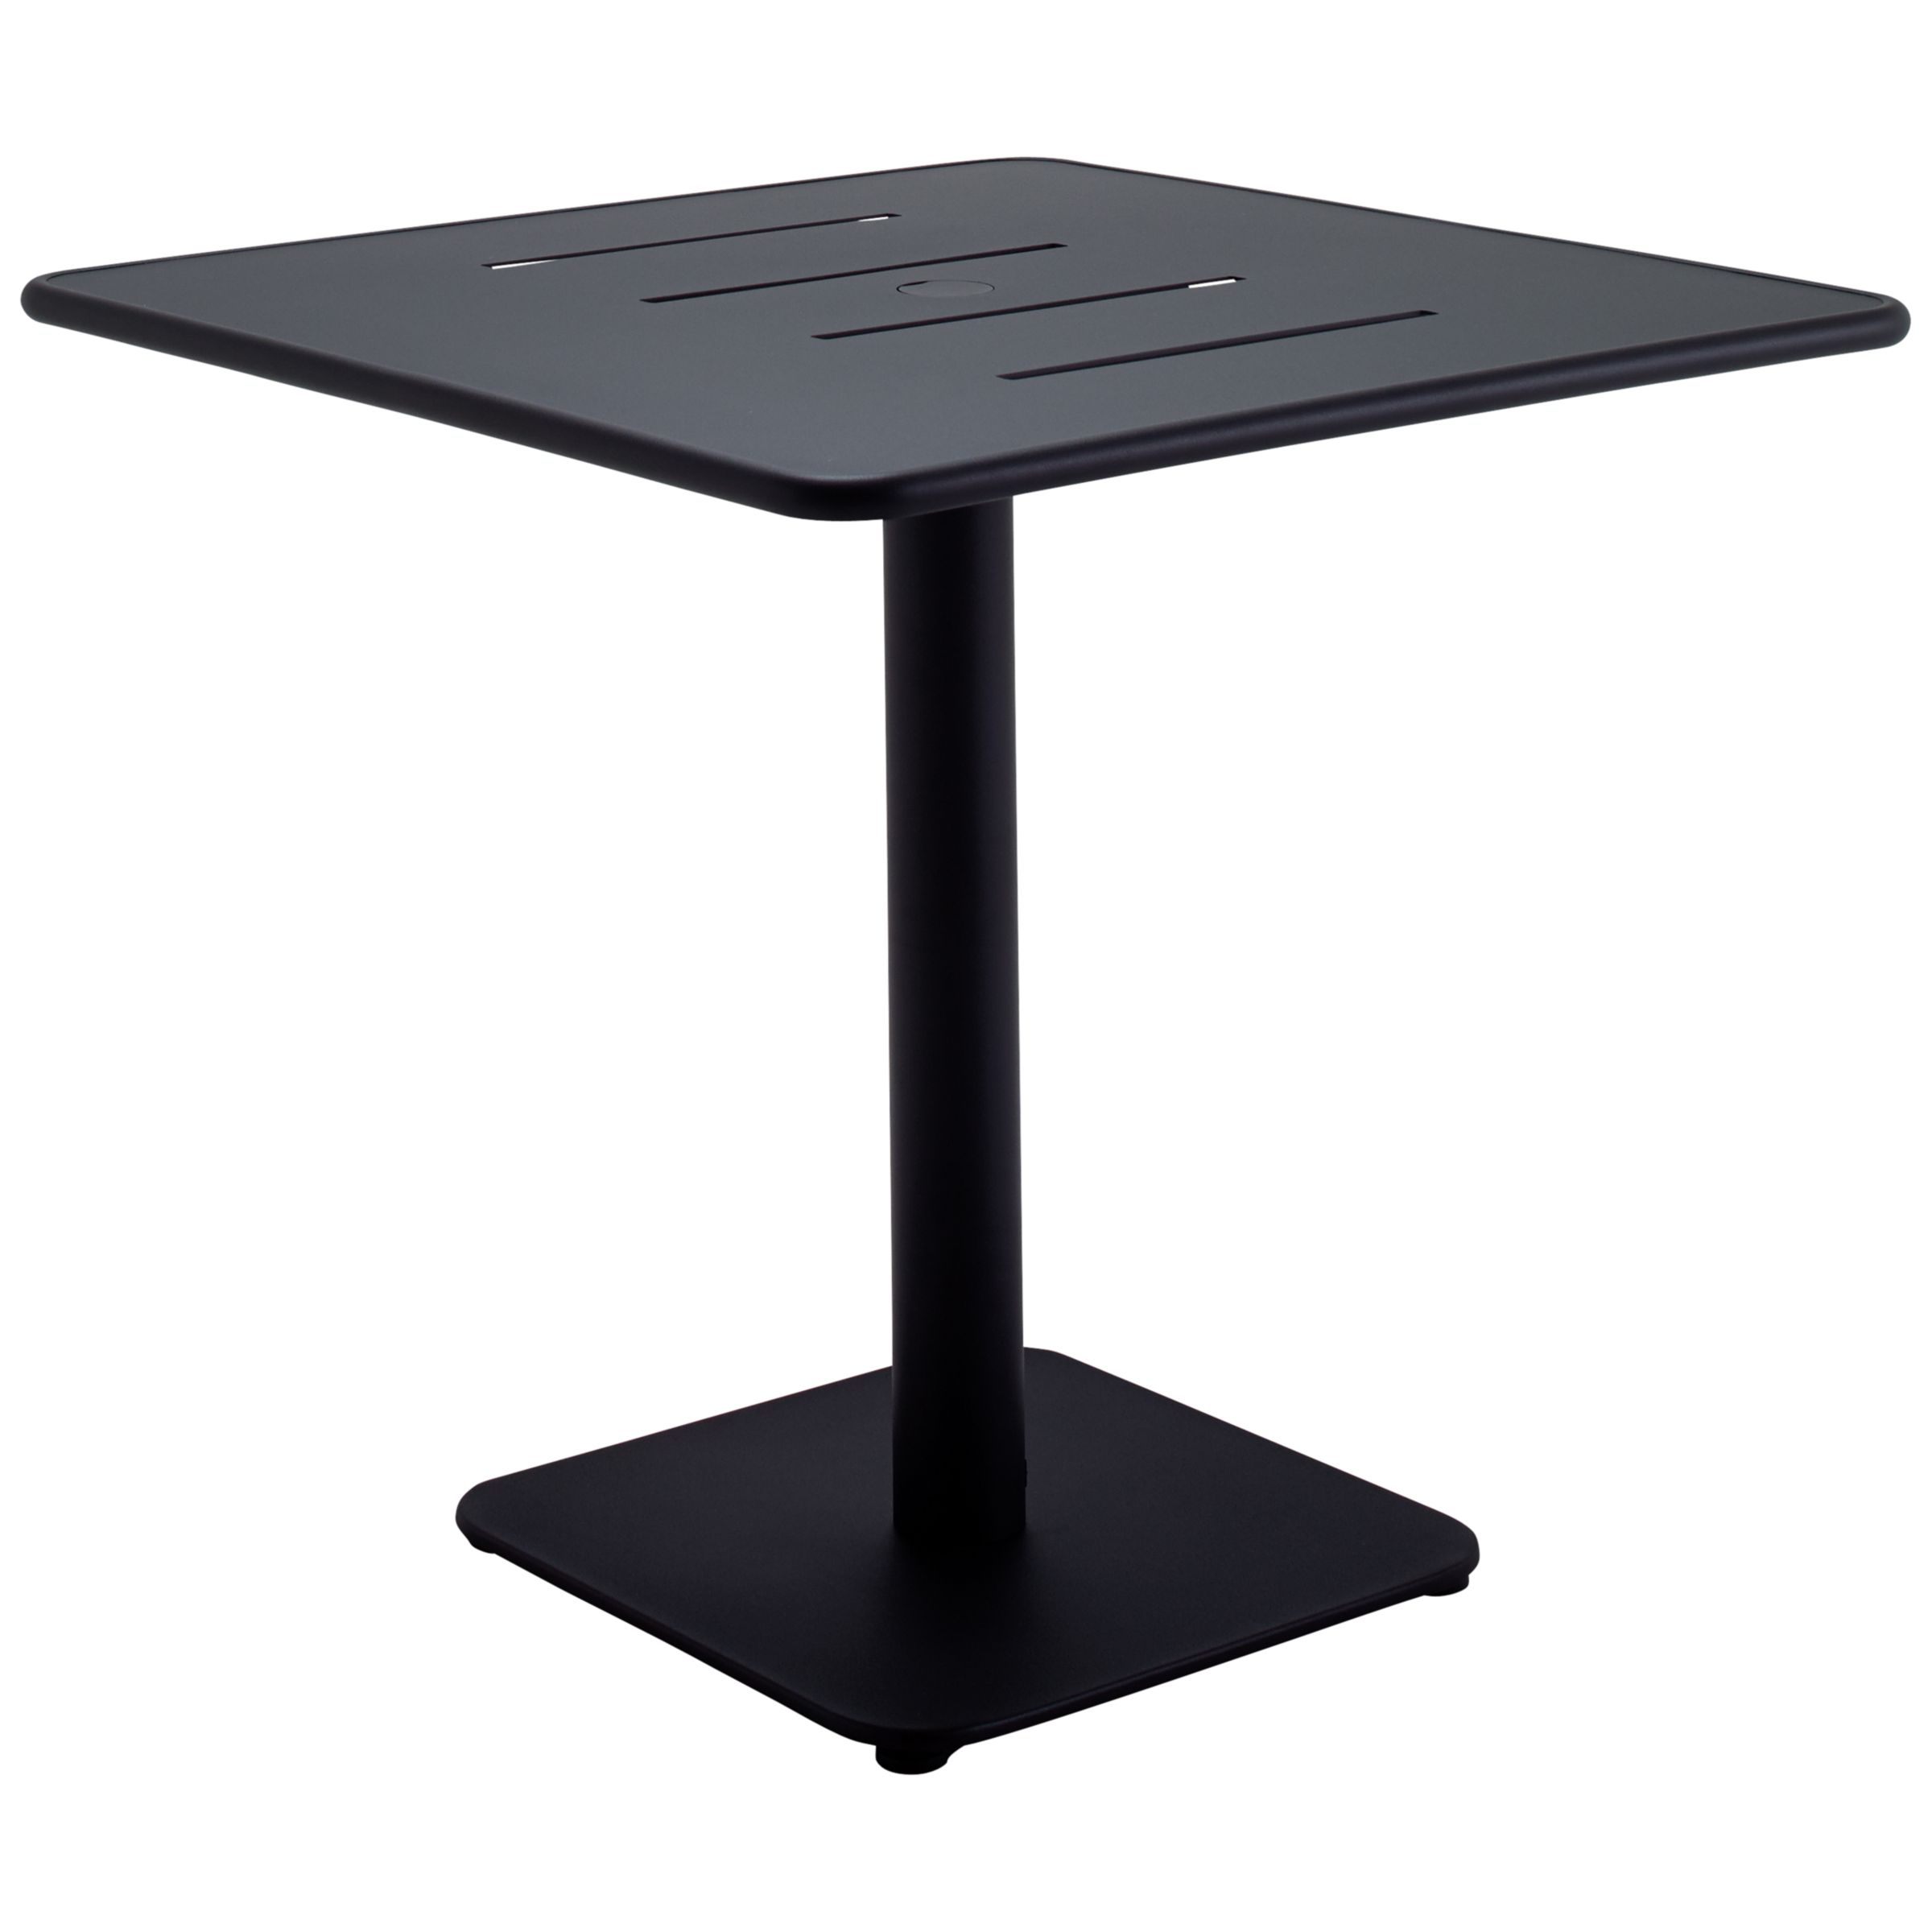 Gloster Nomad Square 80cm Pedestal Dining Table, Black